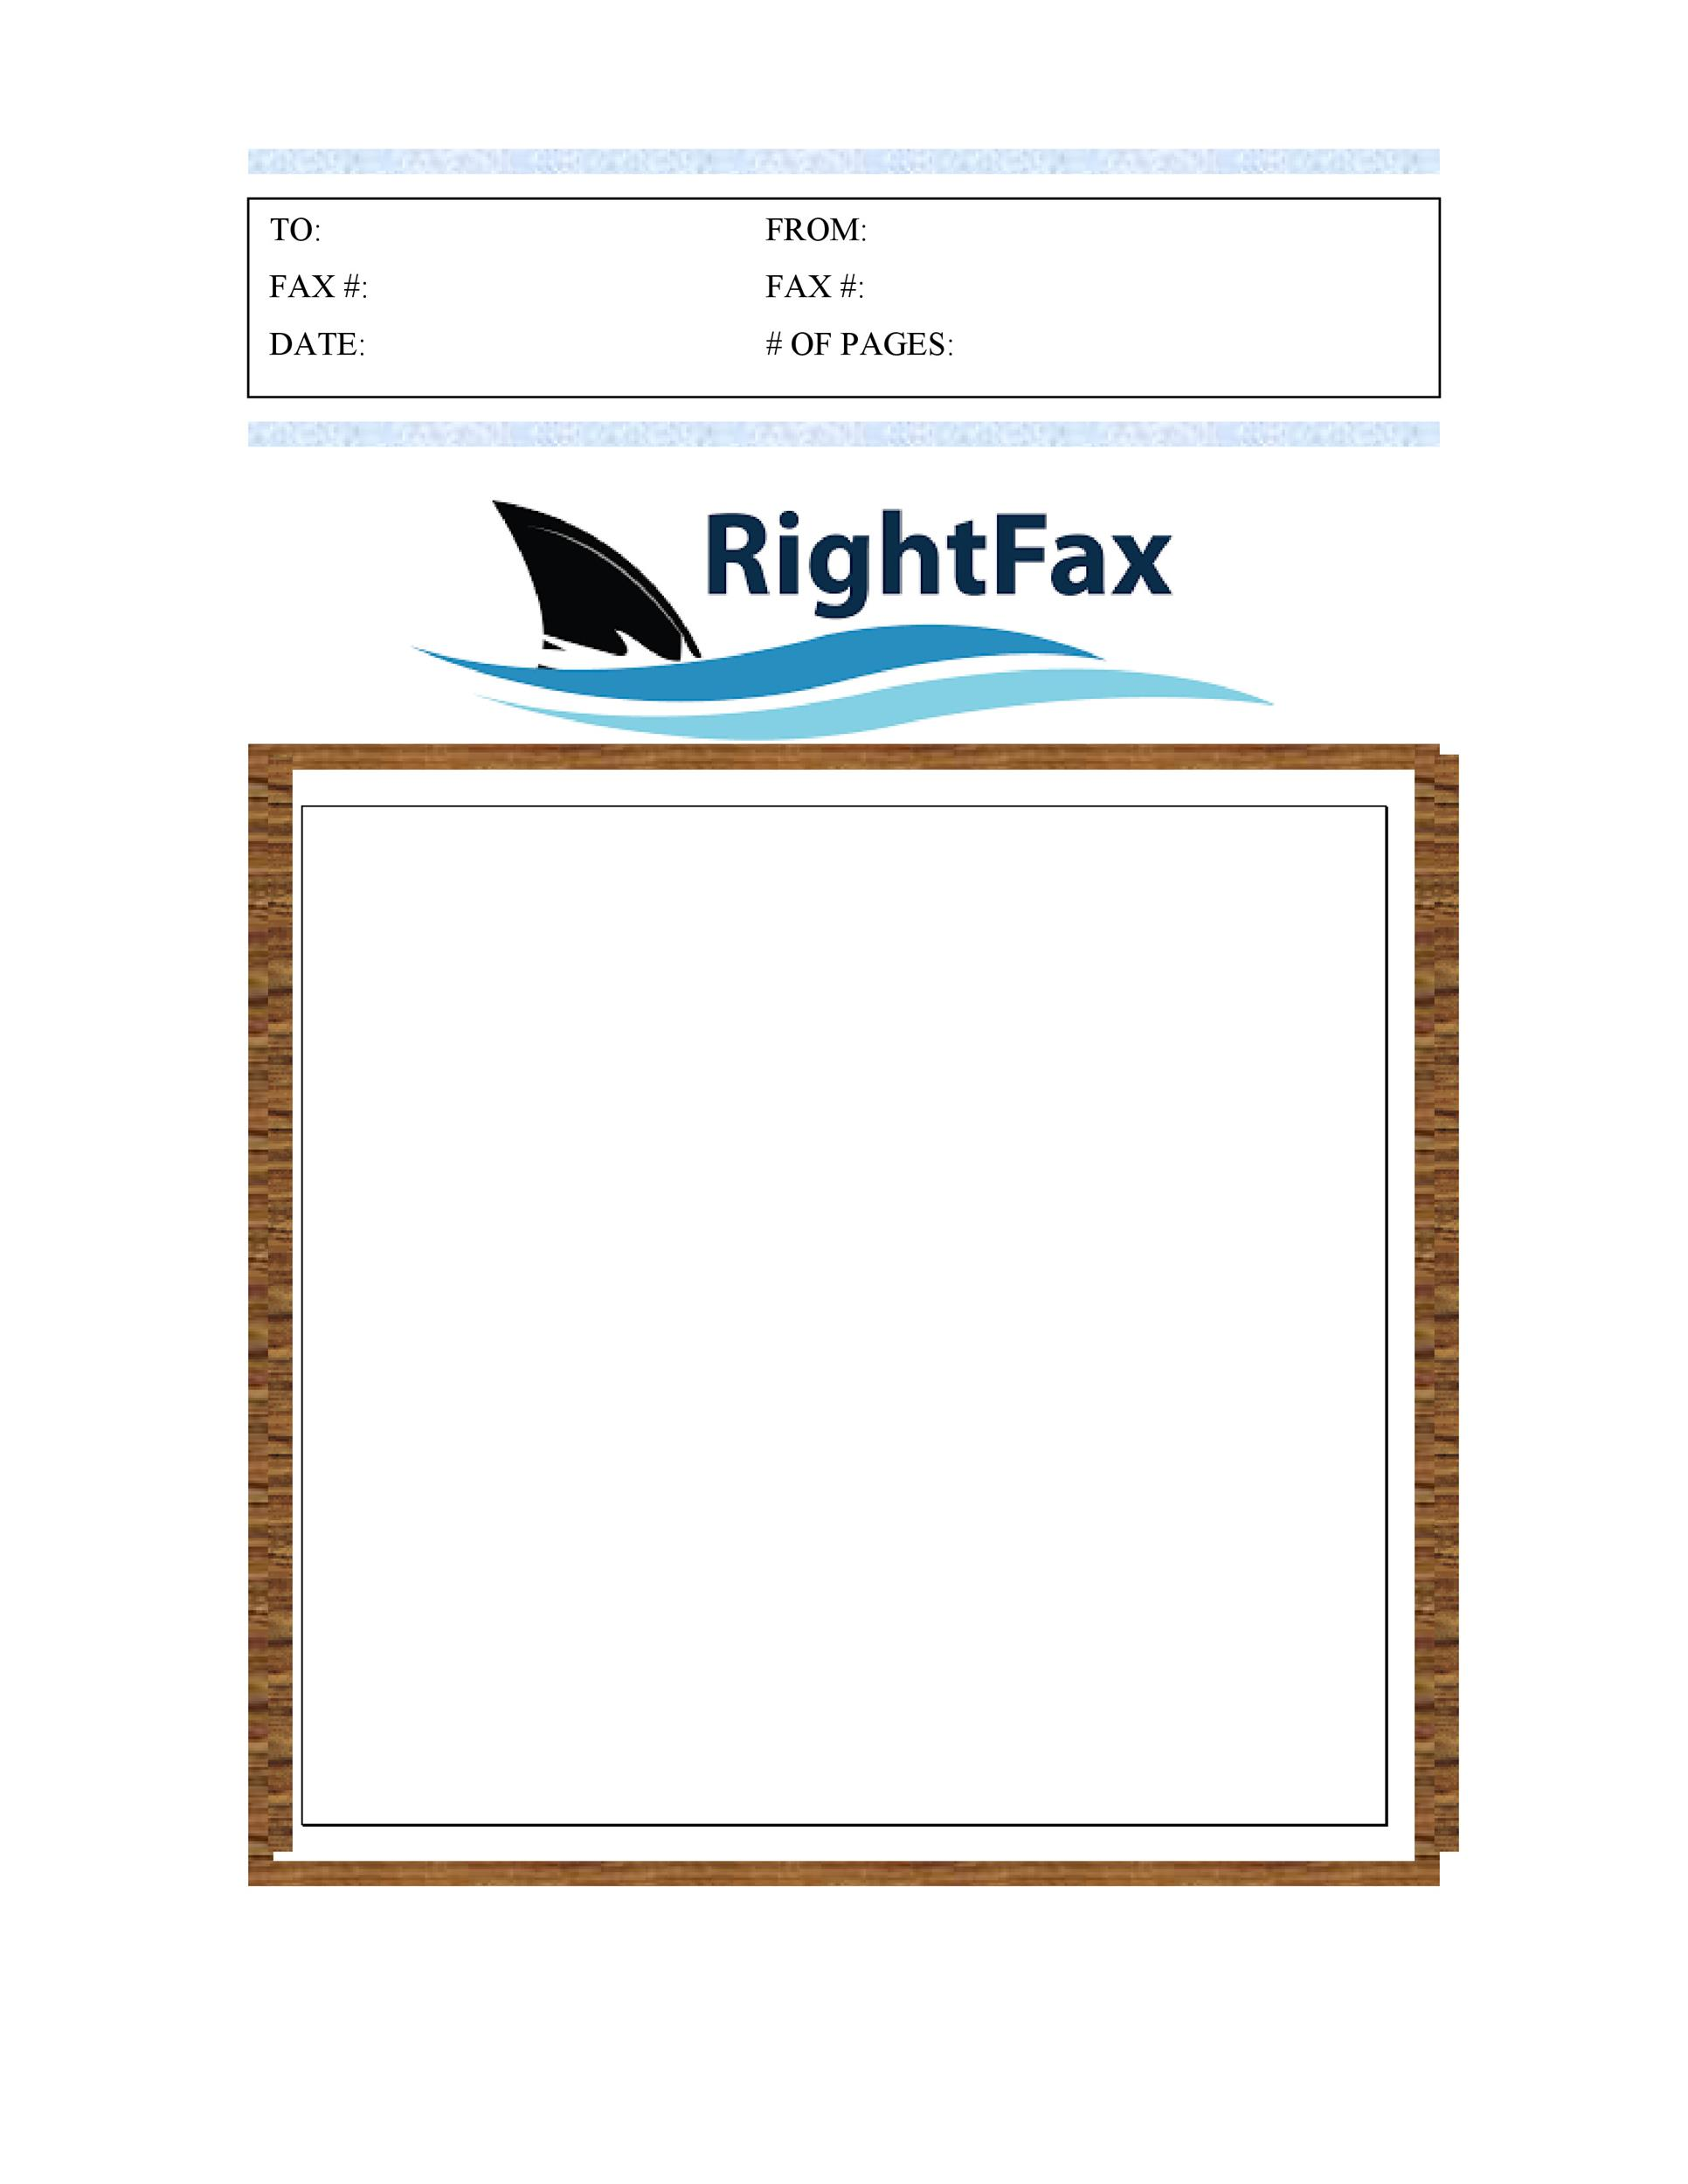 Free Fax Cover sheet Template 31